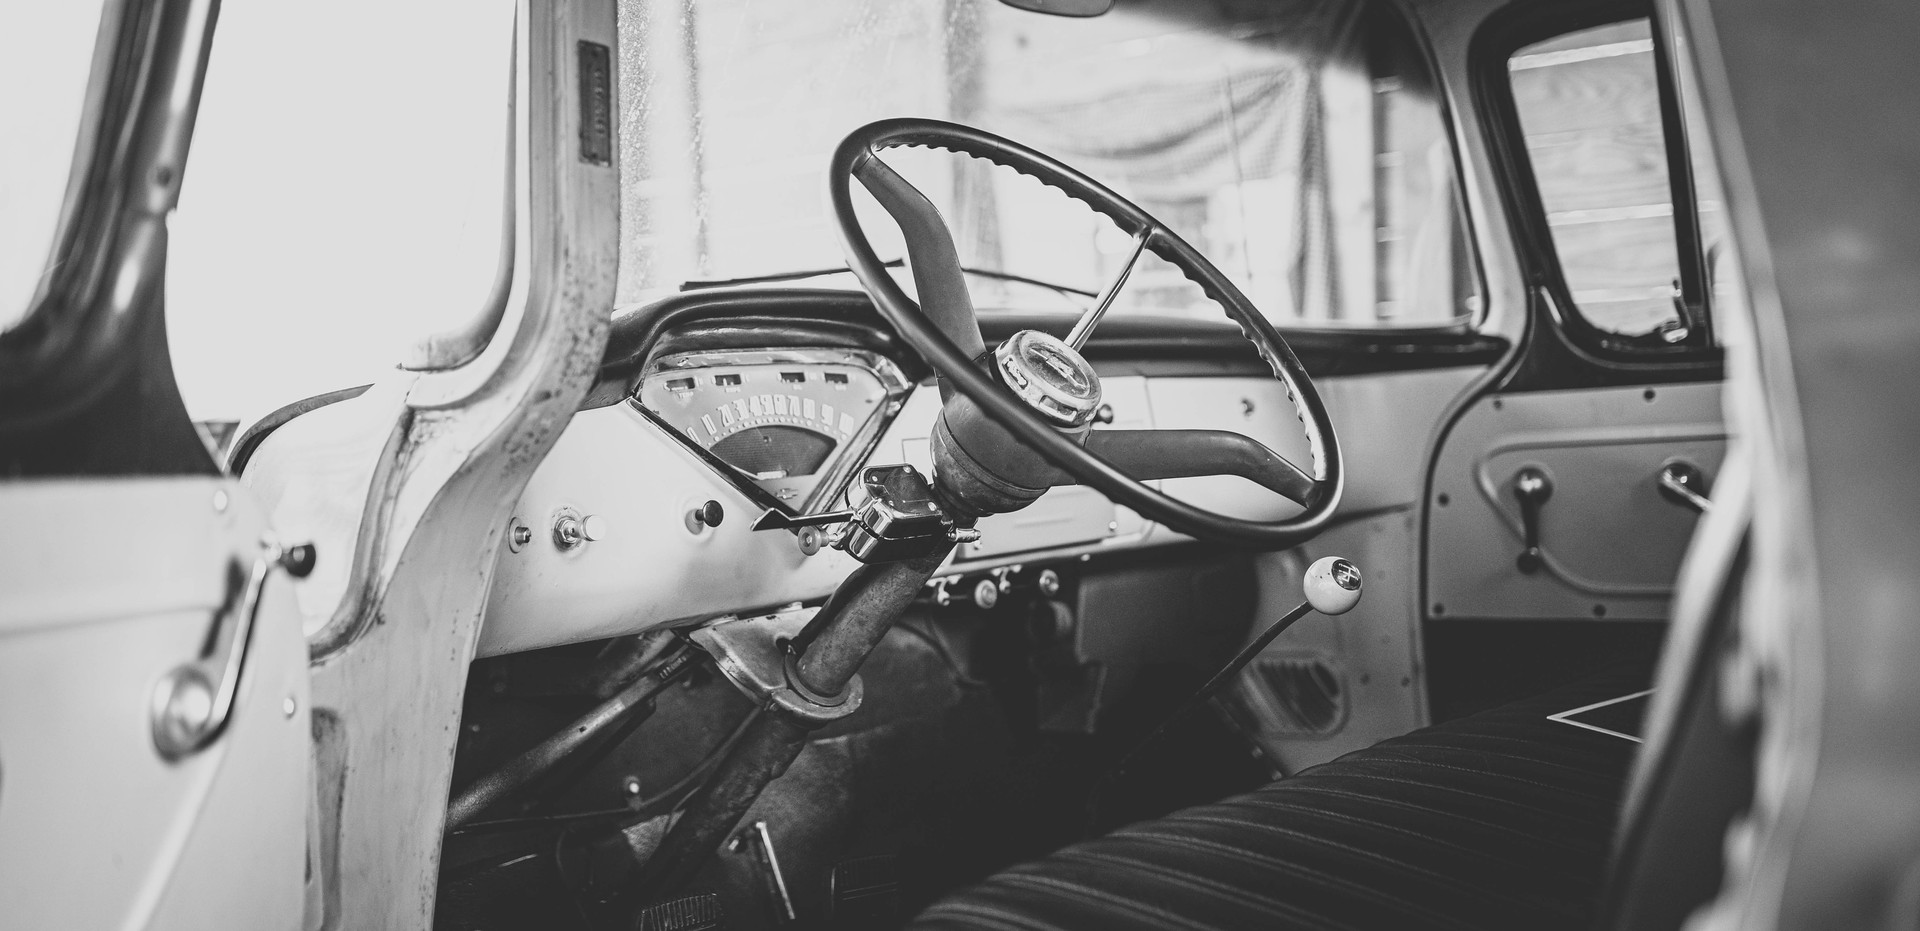 Interior of the truck - really takes you back!